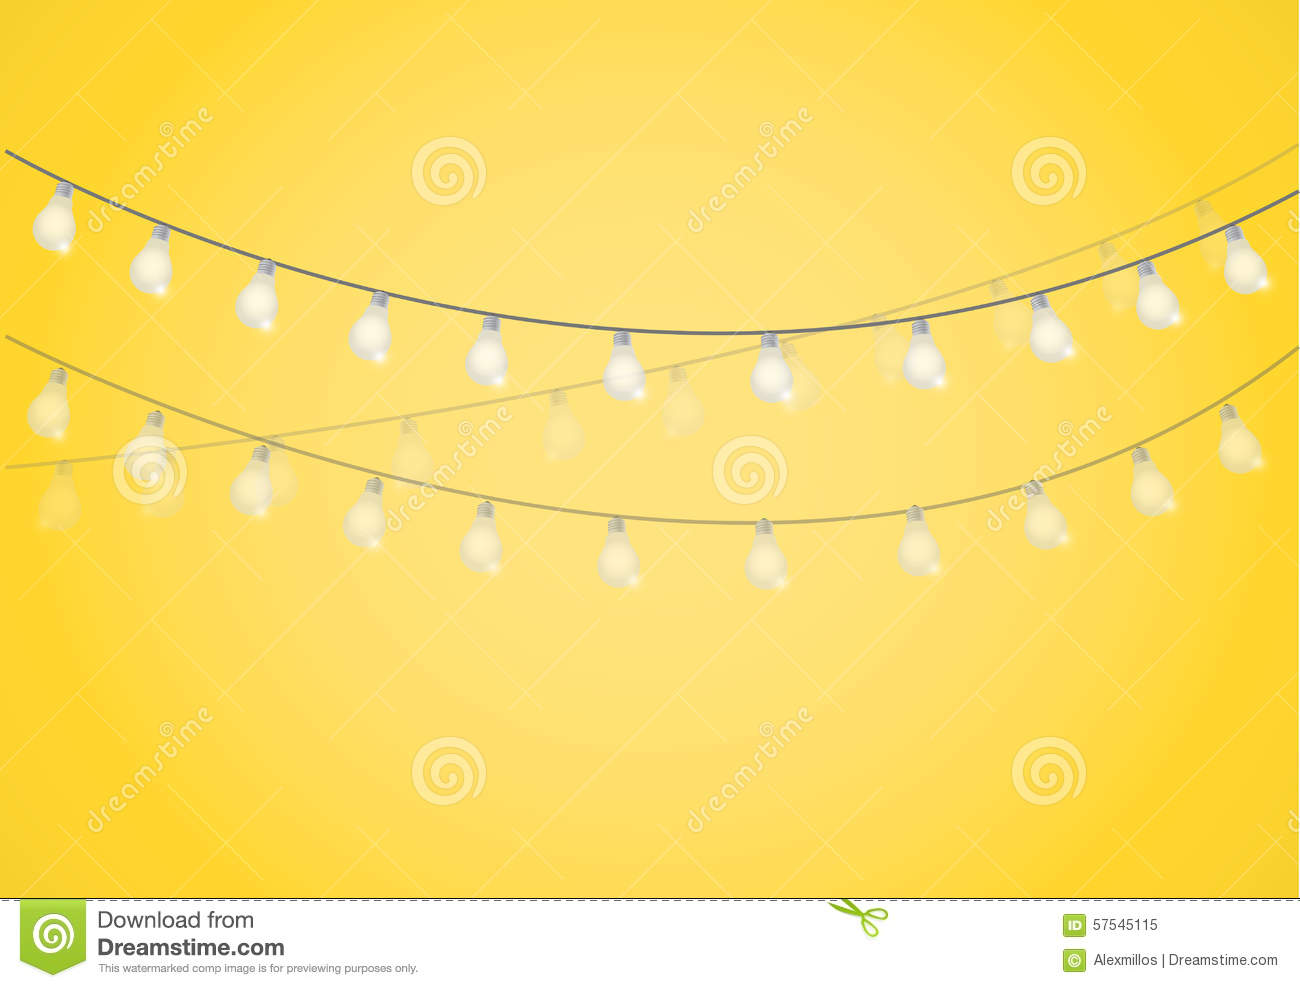 String Of White Lights Clipart : String Of Lights. Hanging Light Bulbs Stock Illustration - Image: 57545115